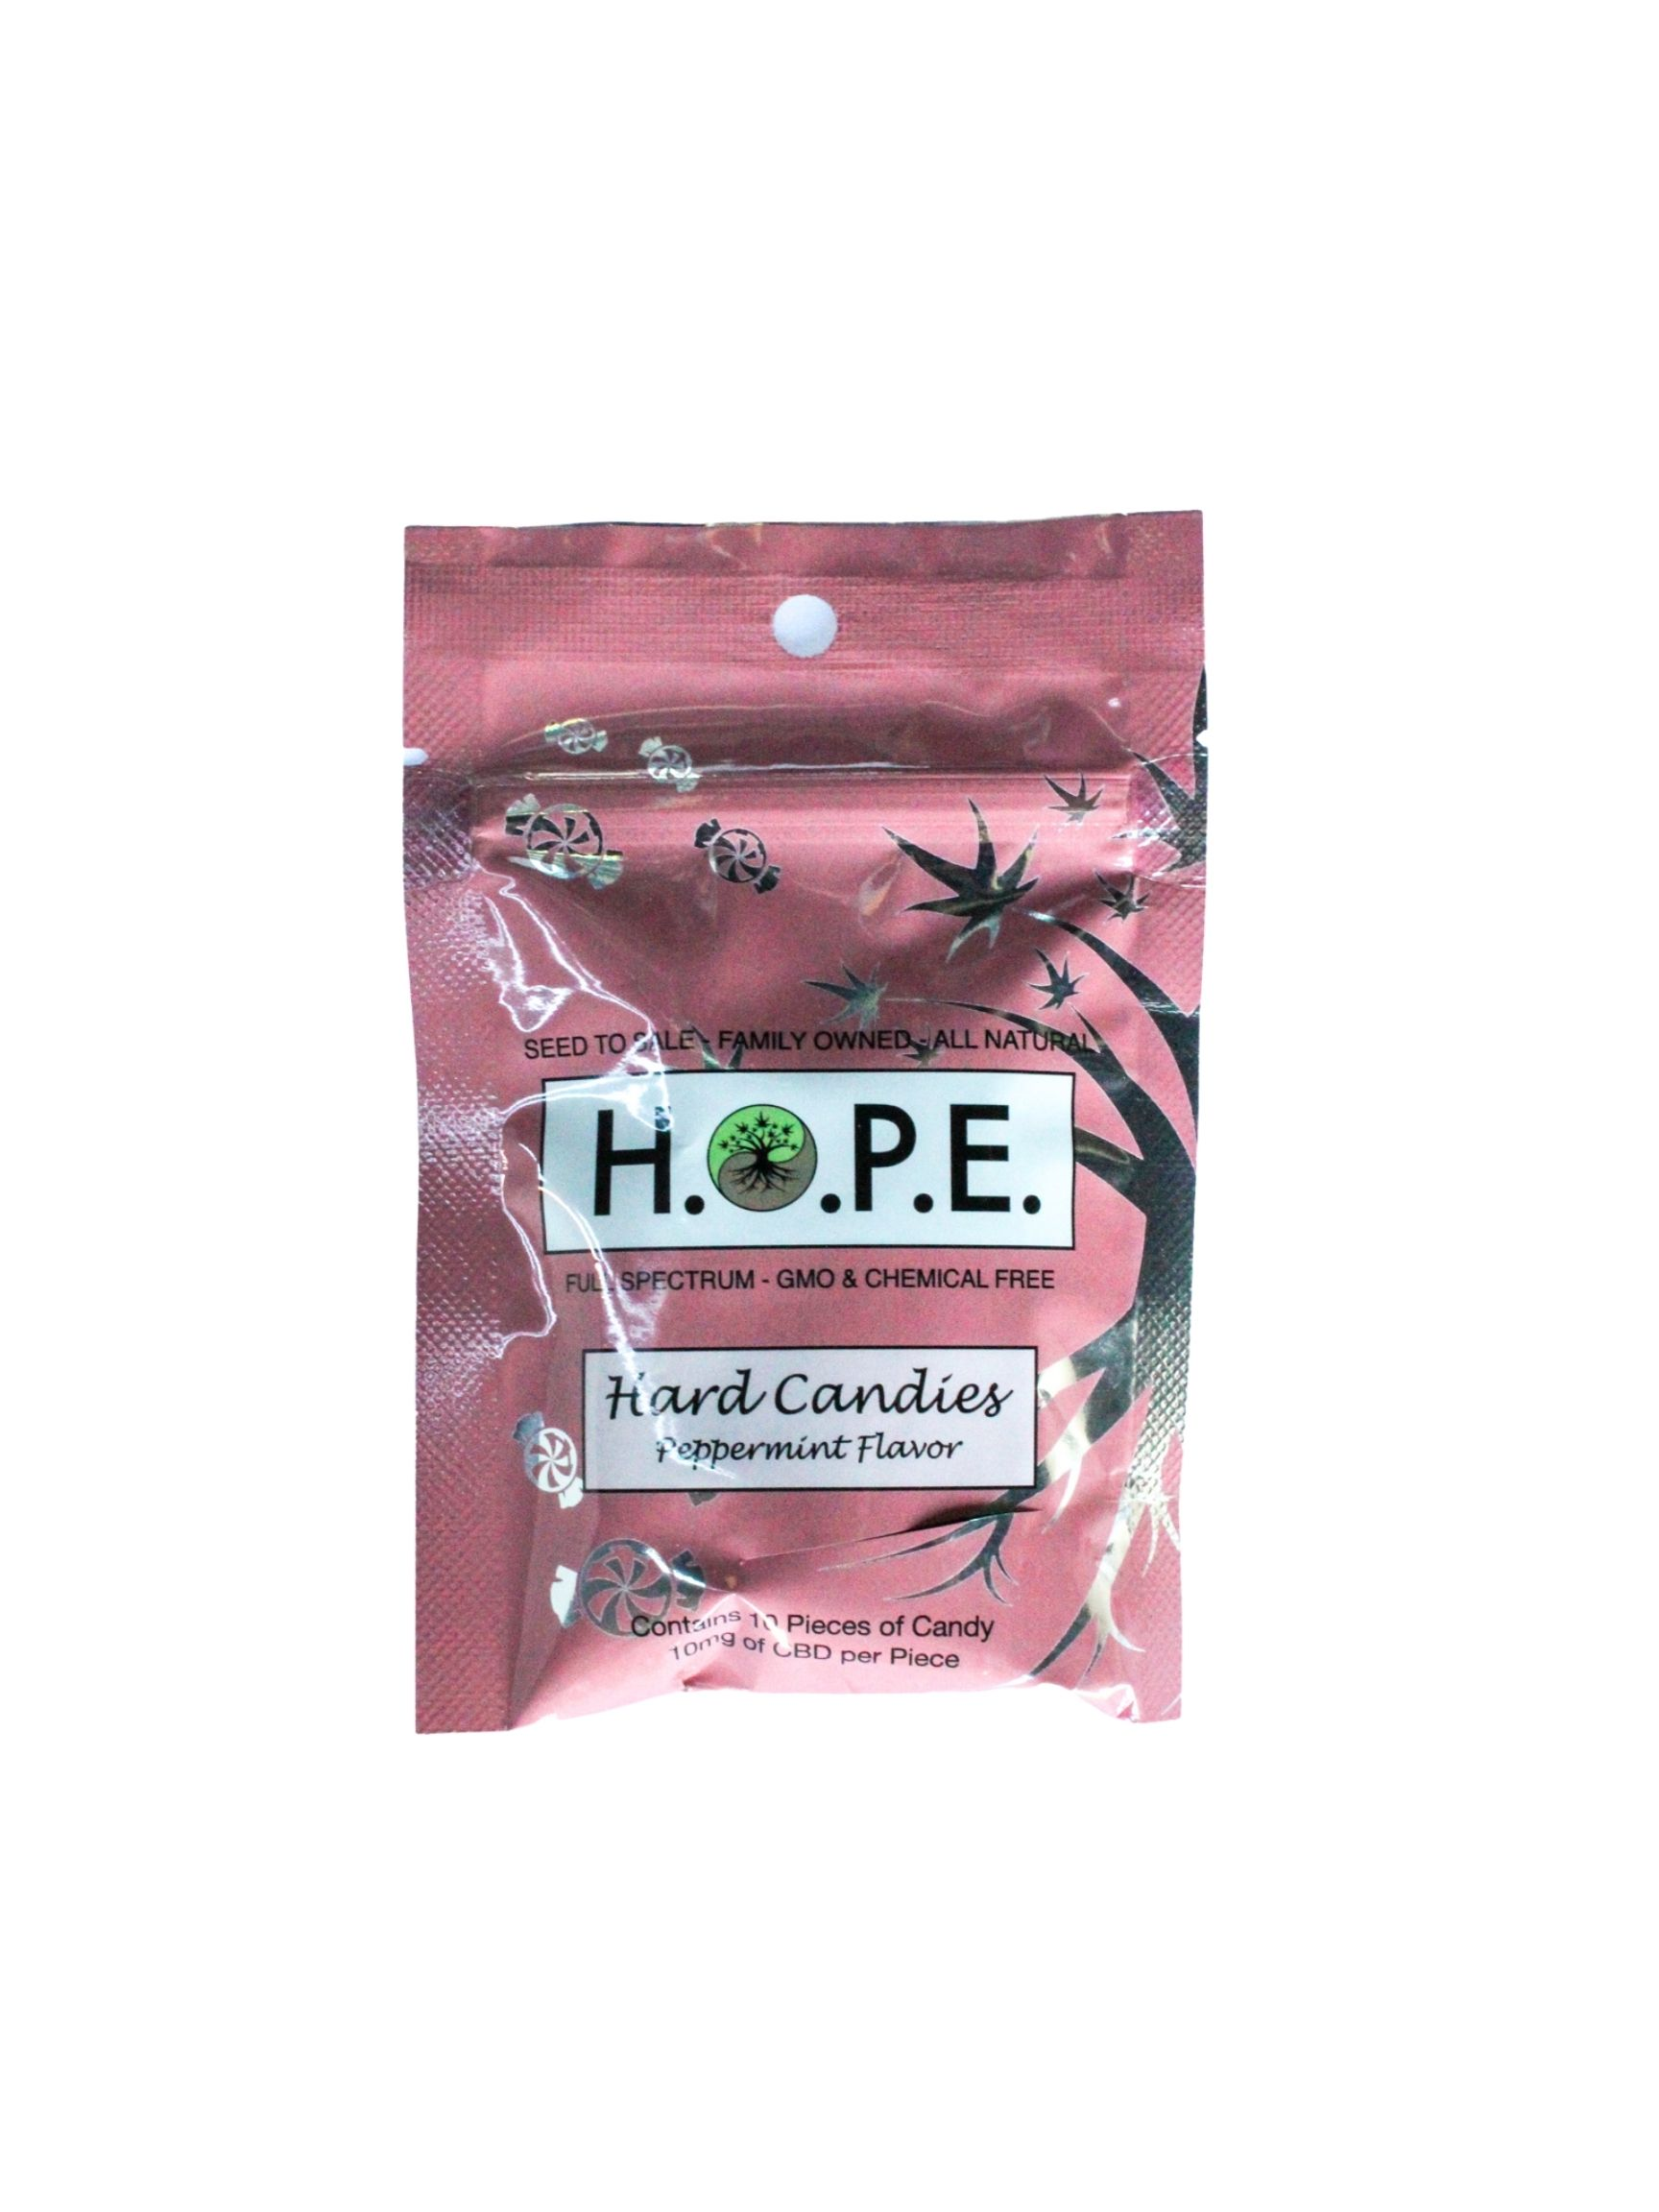 Gallery Image for H.O.P.E. - Hard Candies